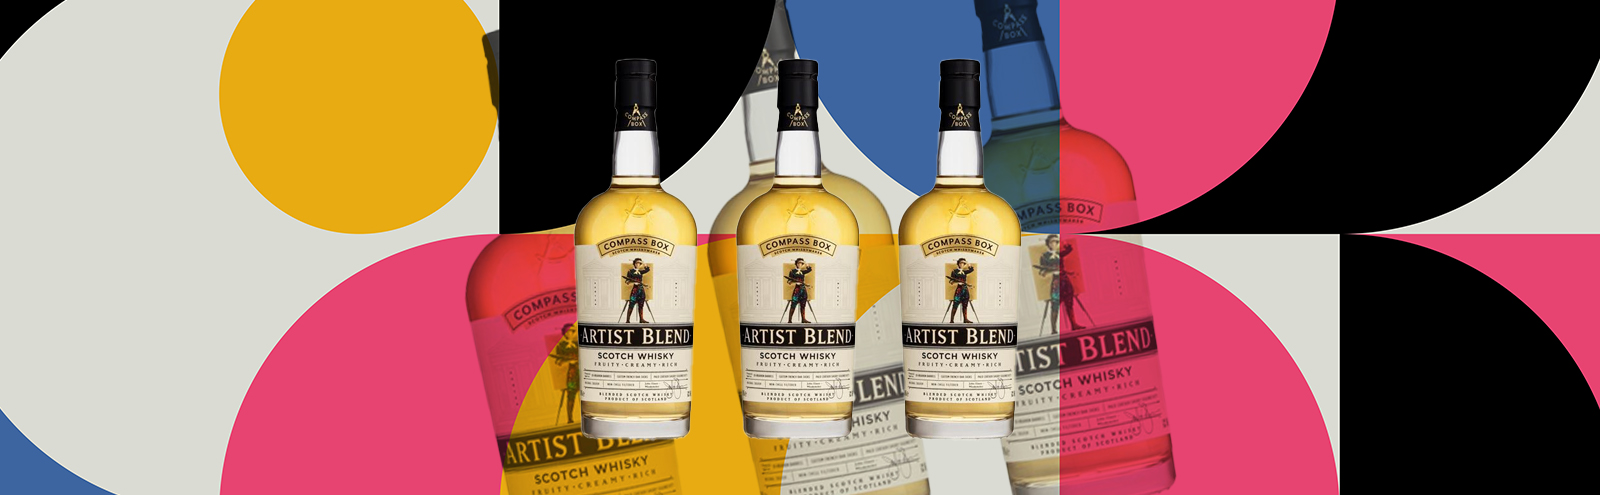 Compass Box Artist Blend Scotch Delivers A Pairing Of Great Flavor And High Value